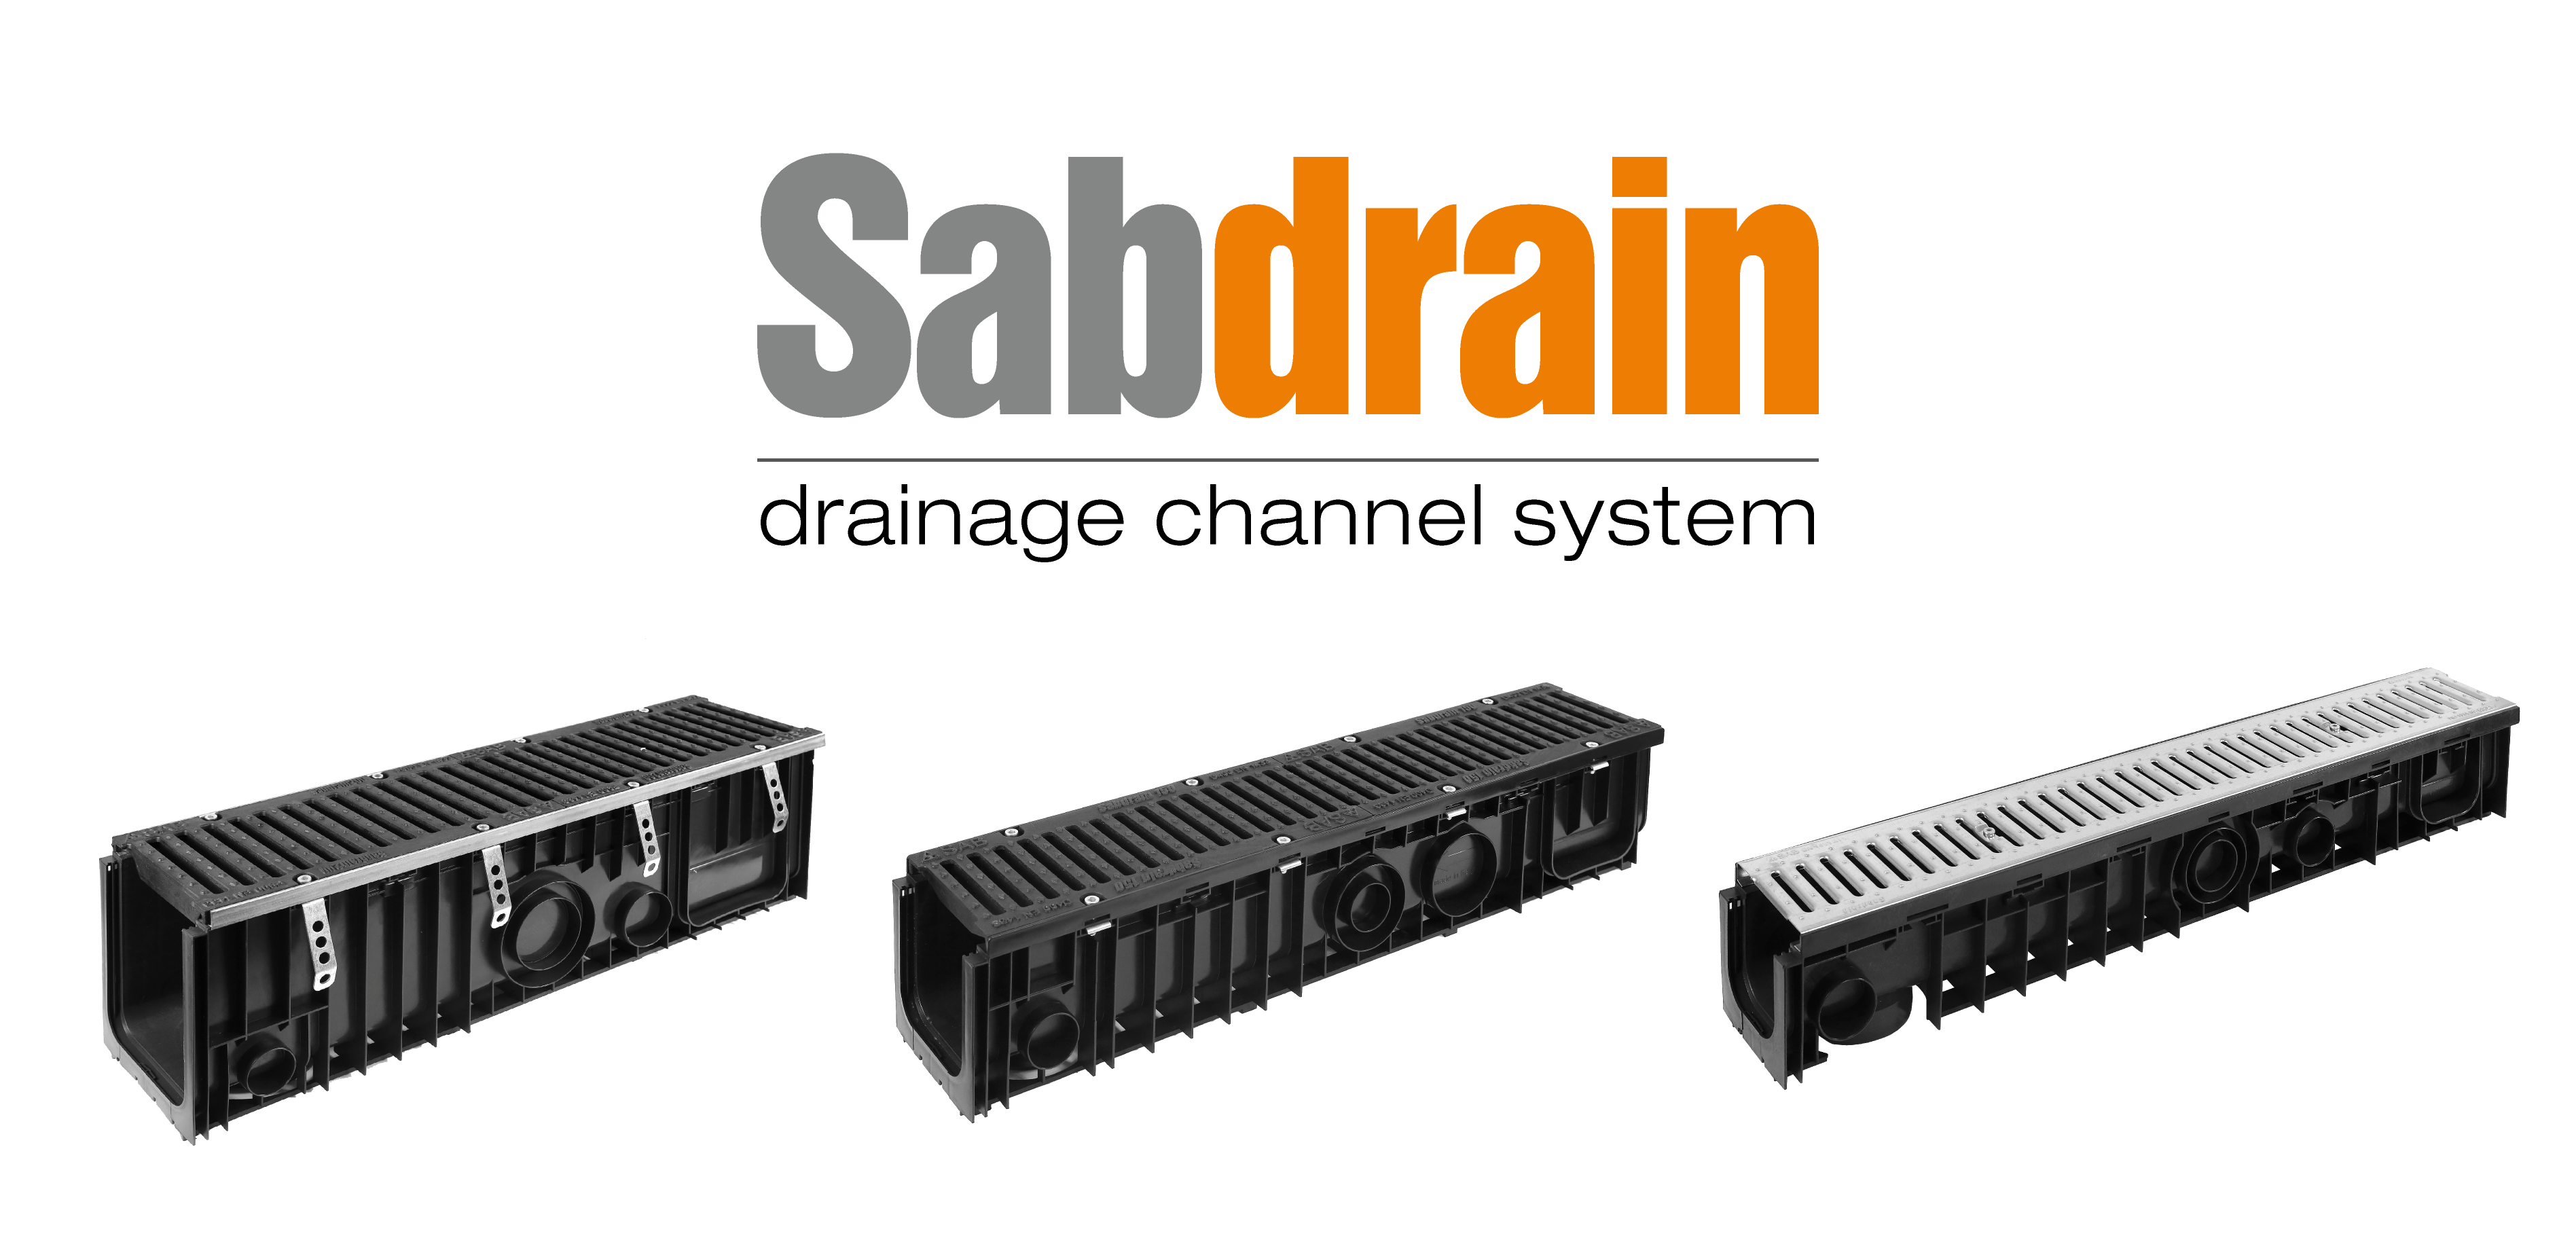 Sabdrain - drainage channel system